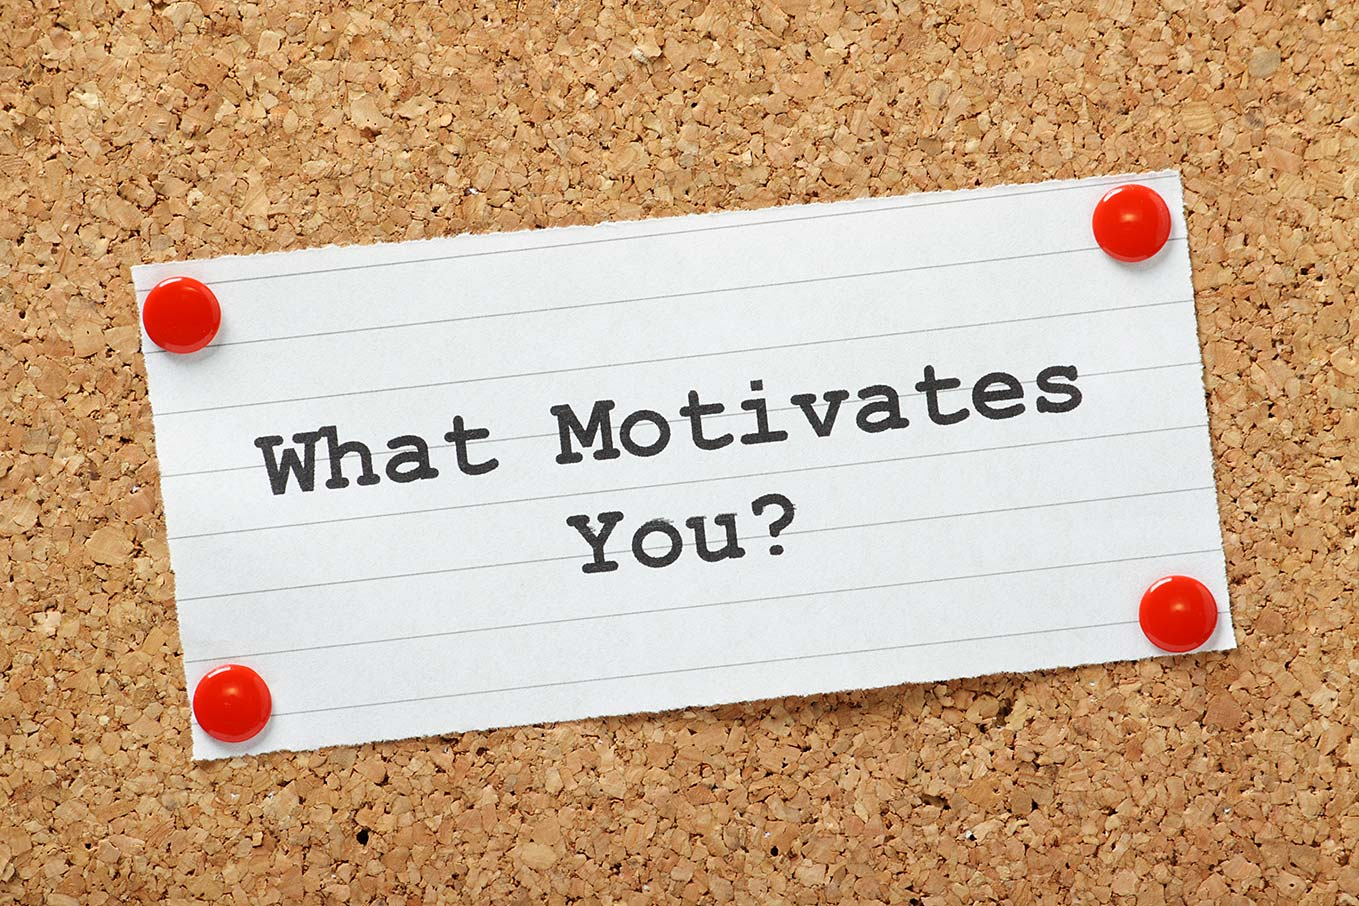 Staying Motivated – What's Getting in Your Way?